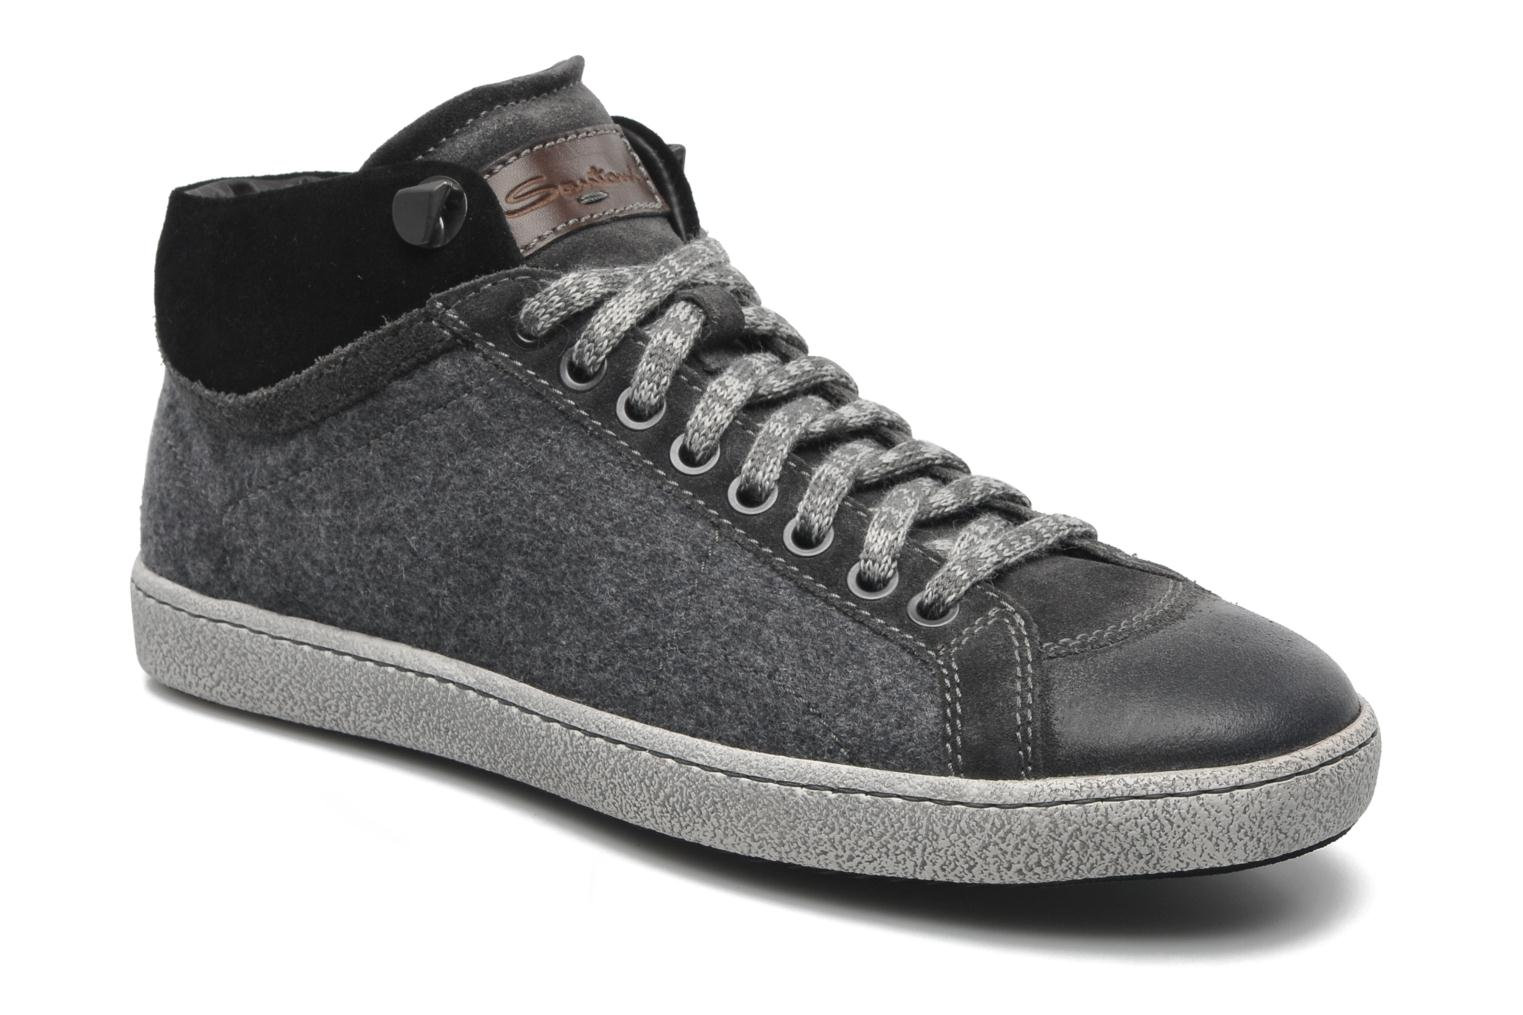 Sneakers Nestea3304 by Santoni